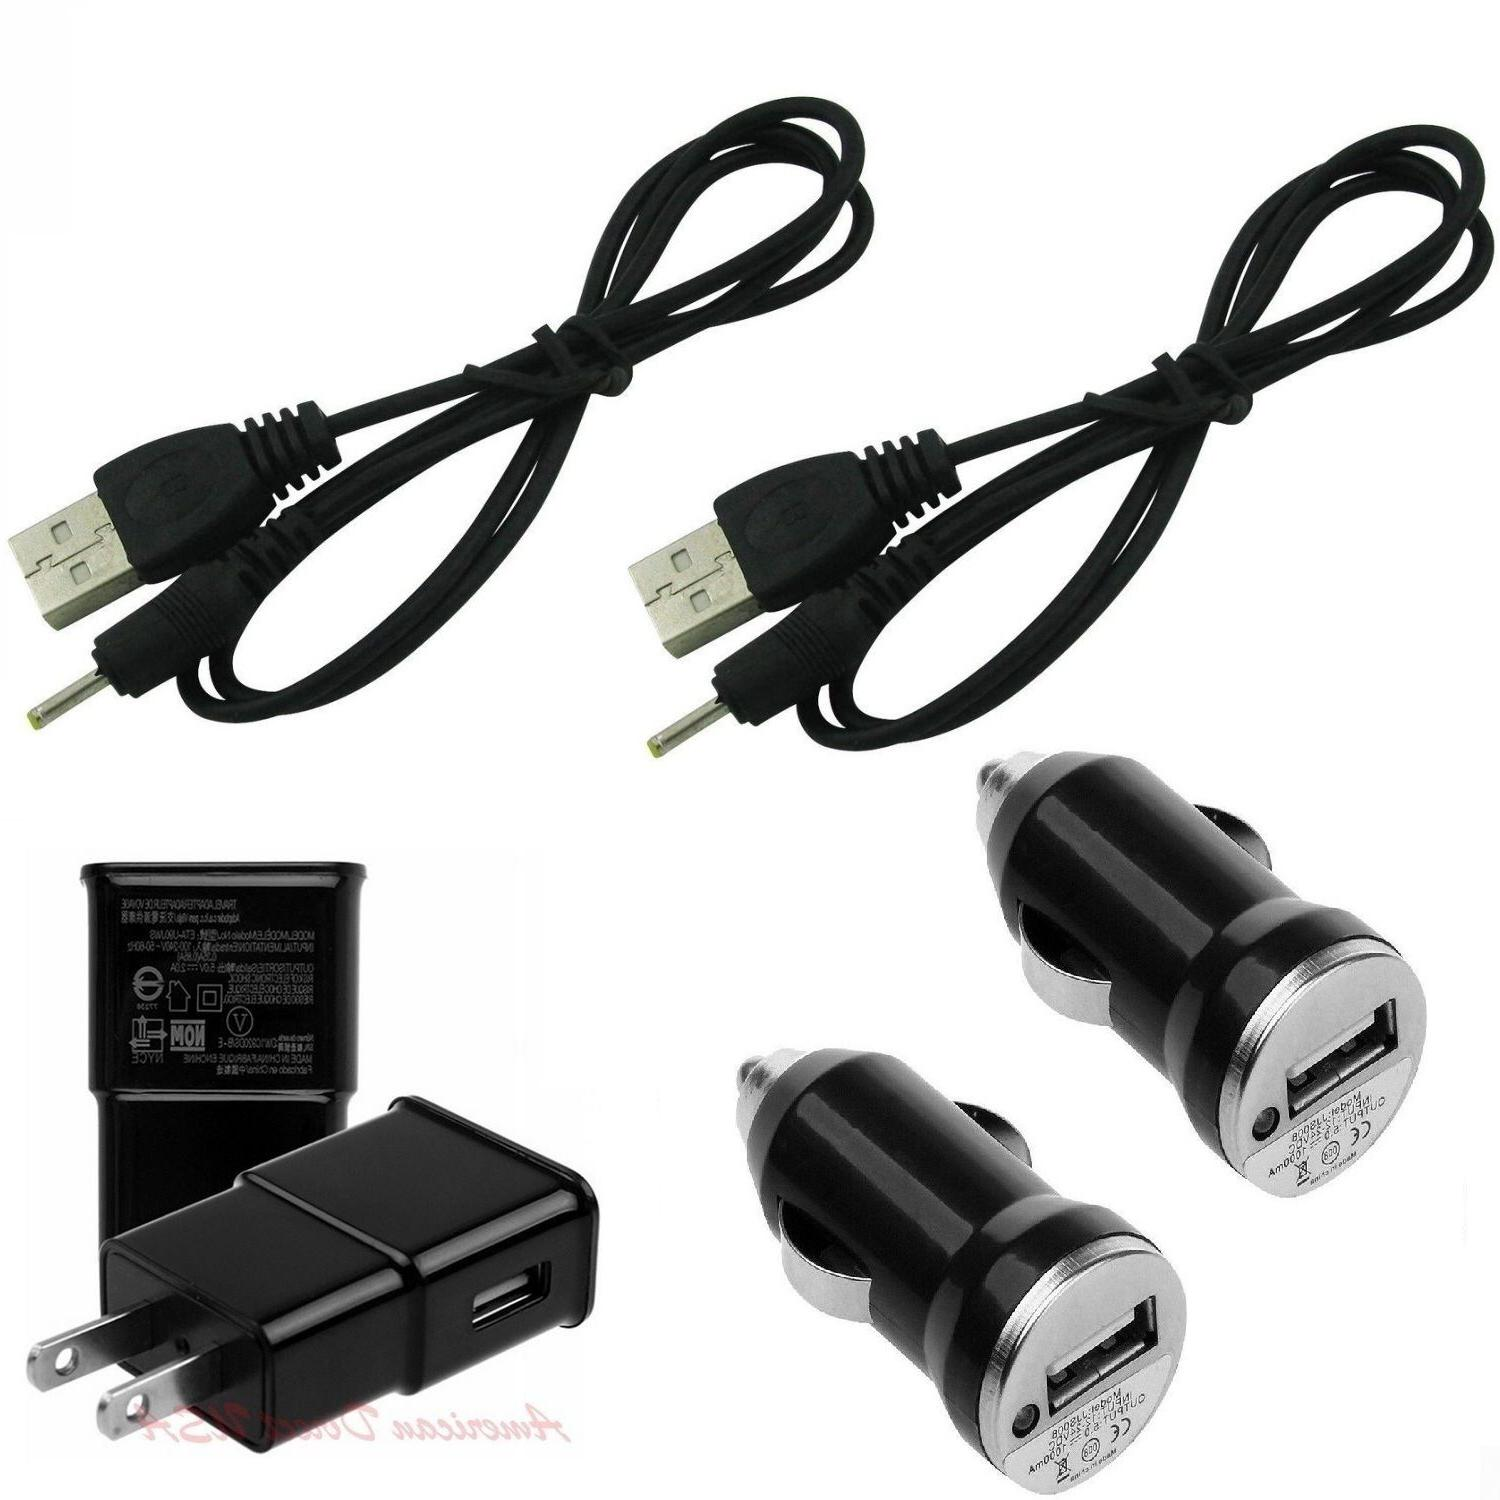 Wall Charger+2x Car+2XUSB Cable ADAPTER Cord For RCA RCT6378